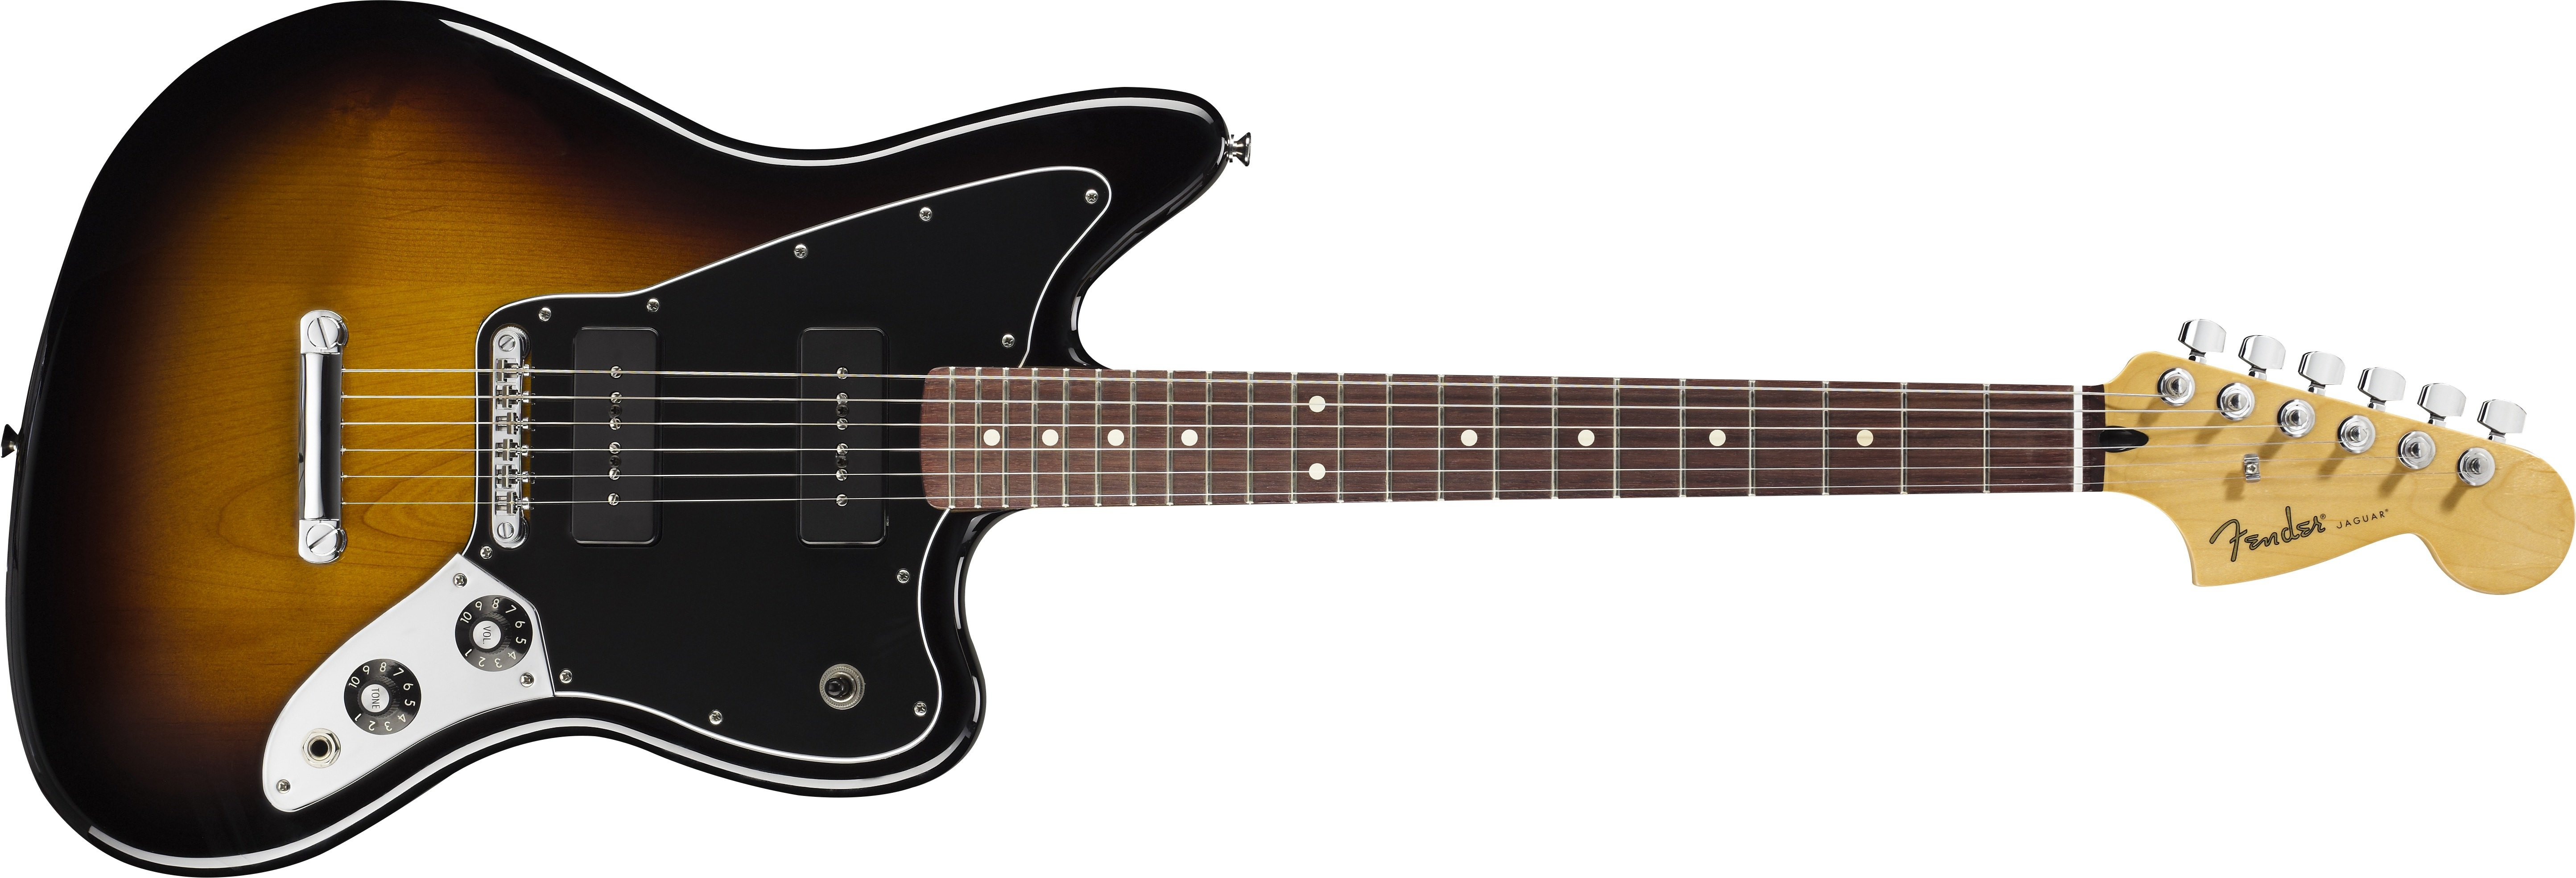 1965 Fender Jaguar Wiring Diagram Diagrams Schematics Mustang Charming Contemporary Comfortable Images Electrical